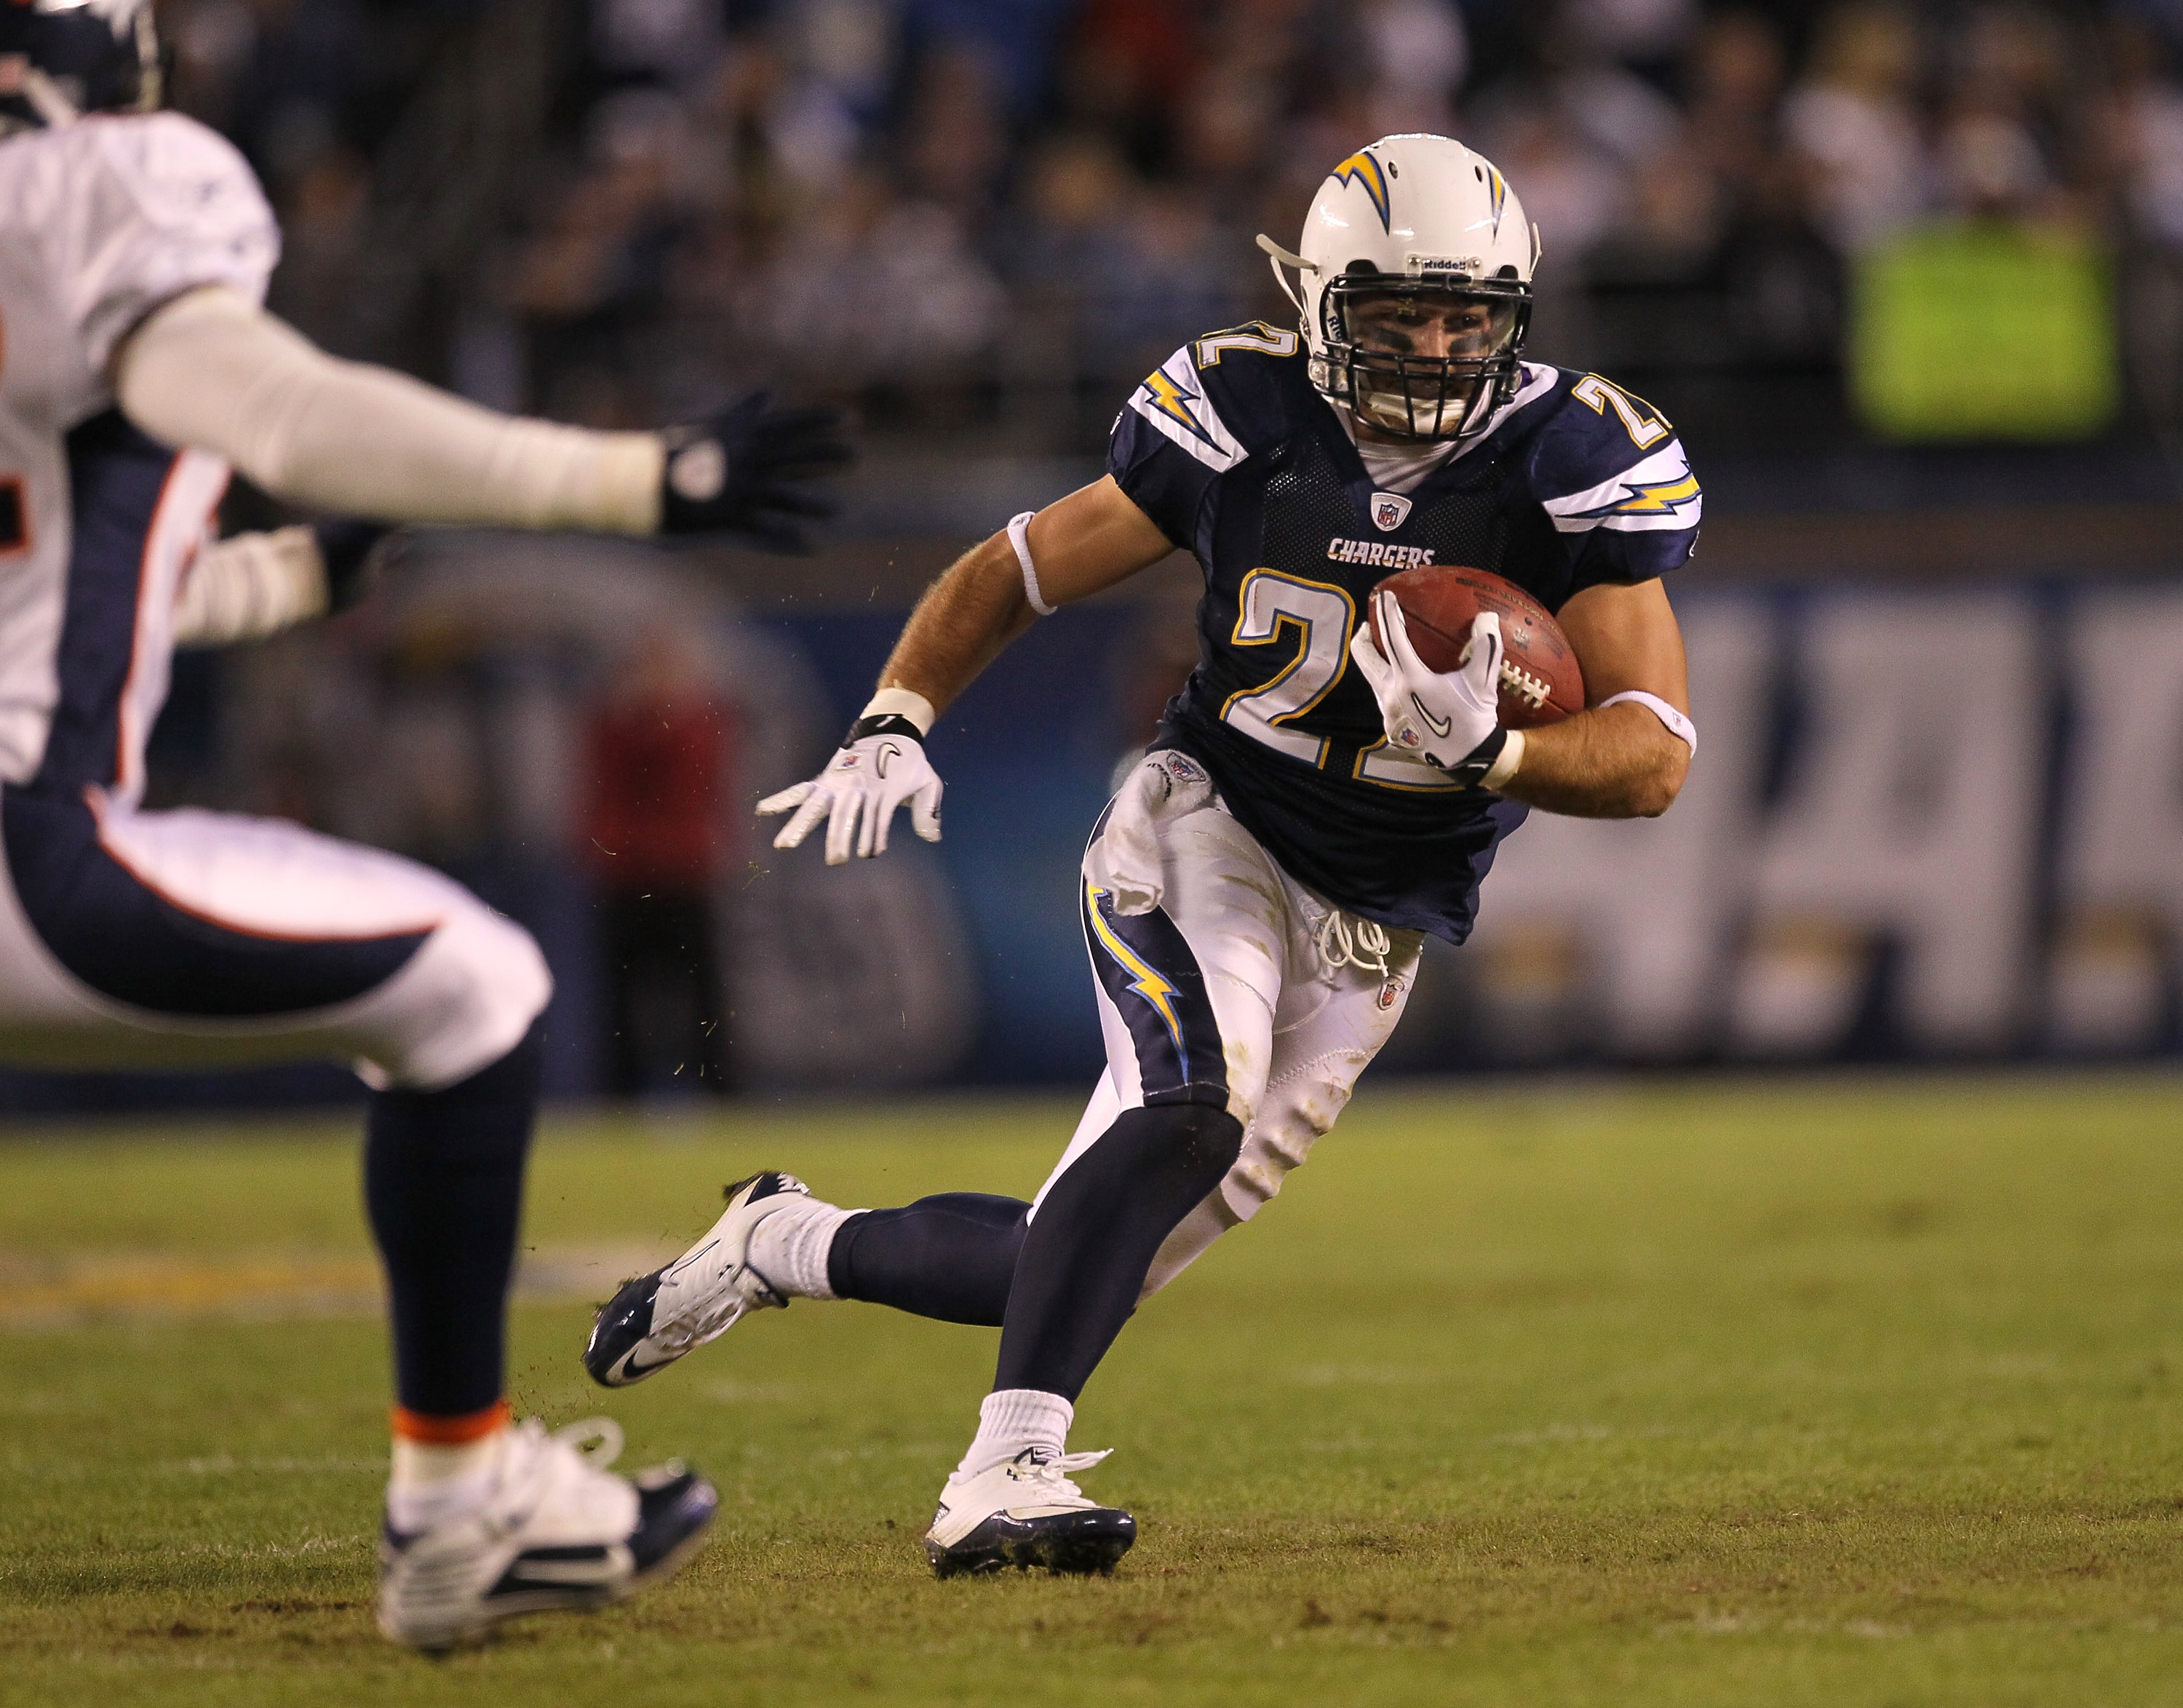 SAN DIEGO - NOVEMBER 22:  Running back Jacob Hester #22 of the San Diego Chargers carries the ball after catching a pass against the Denver Broncos at Qualcomm Stadium on November 22, 2010 in San Diego, California.  (Photo by Stephen Dunn/Getty Images)